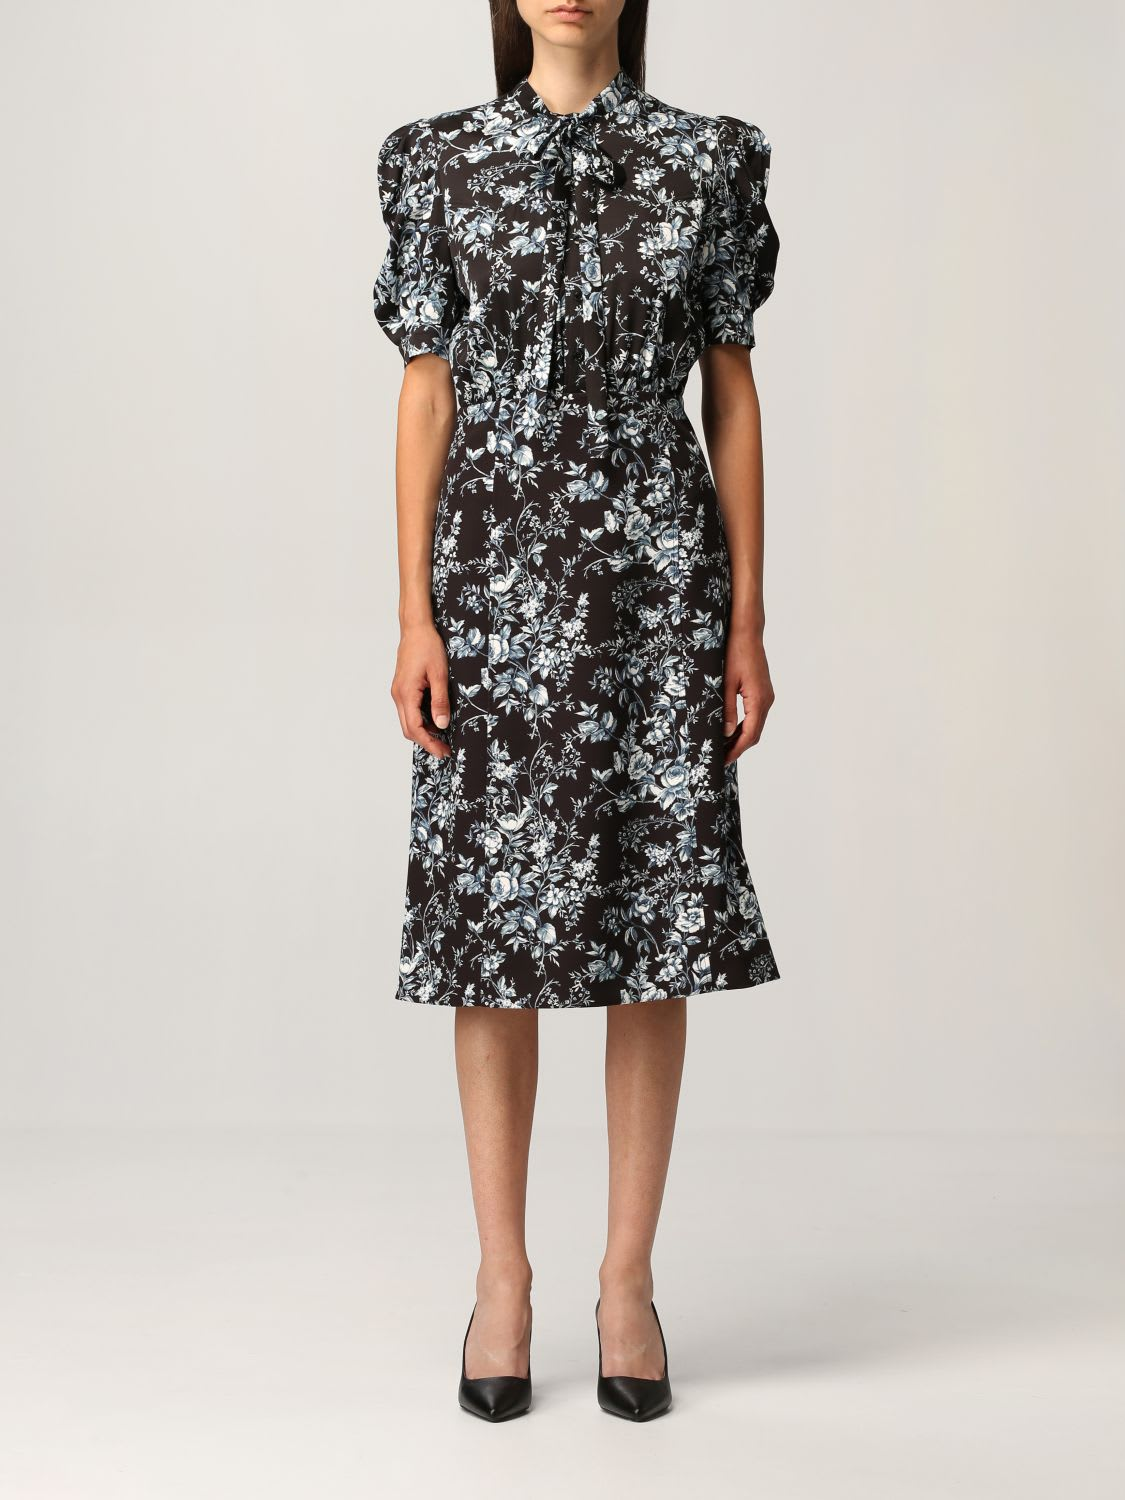 Boutique Moschino Dress Moschino Boutique Dress With Floral Print